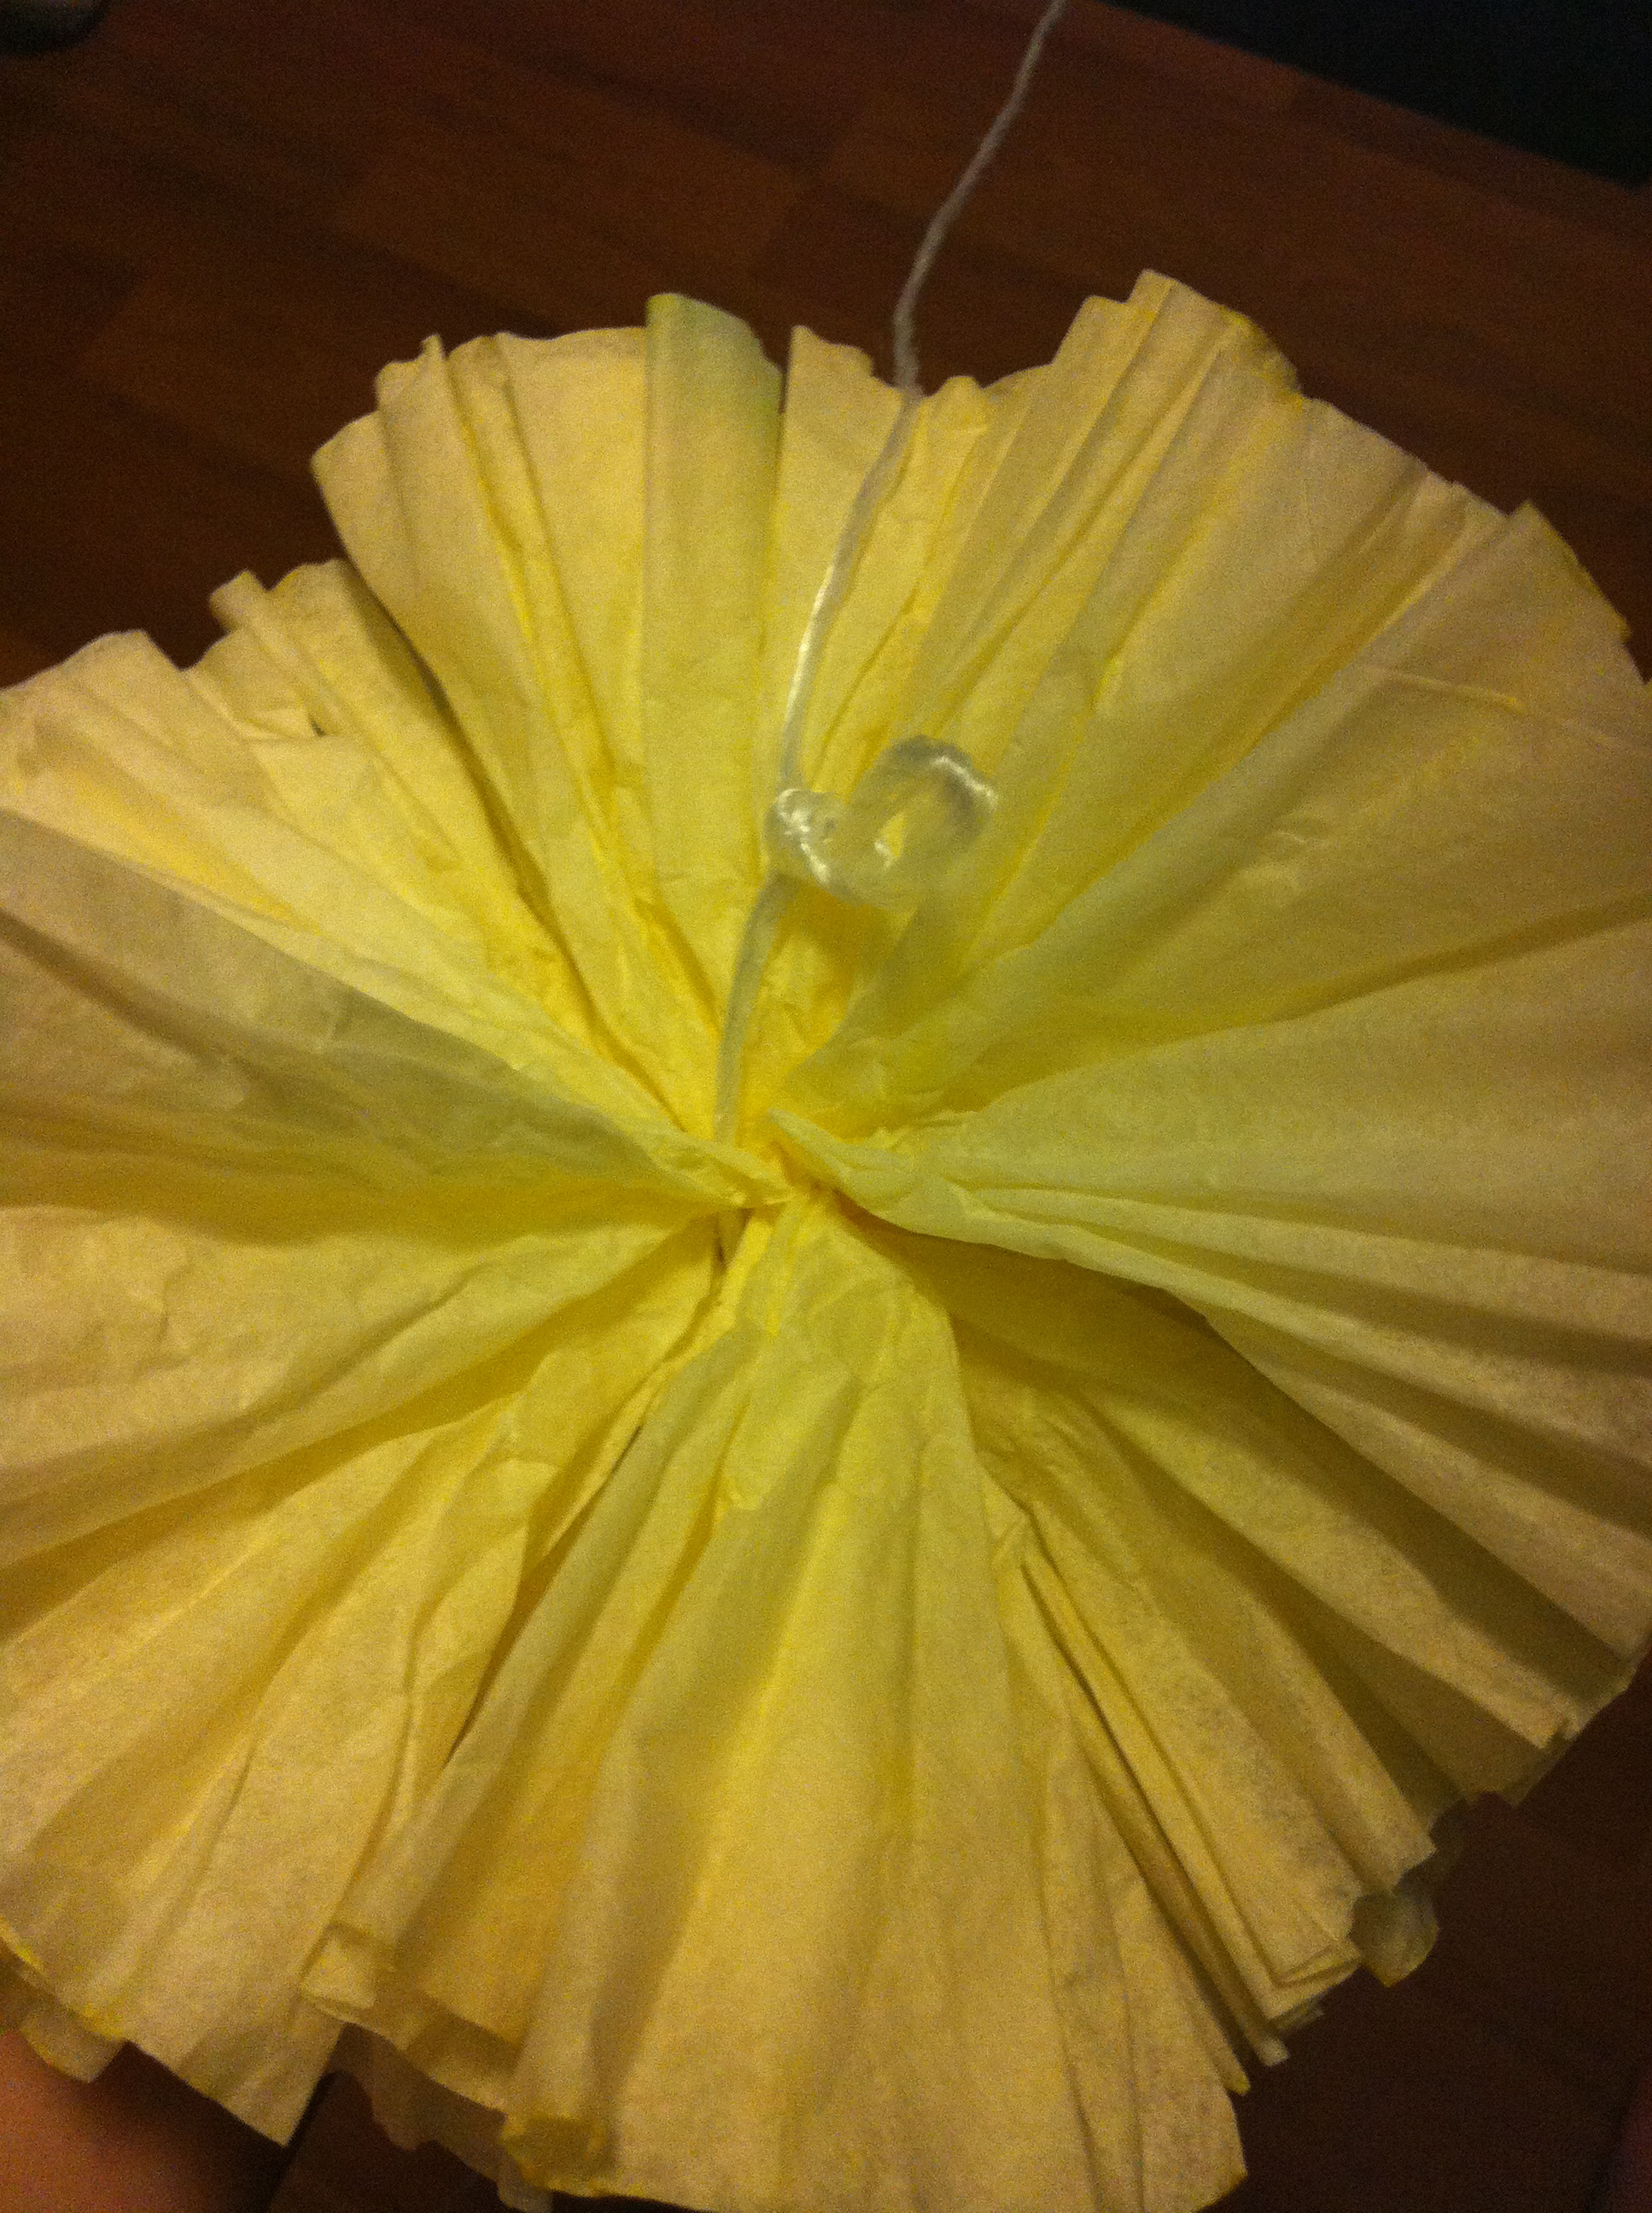 How to: Make a Coffee Filter Garland Pt. 2